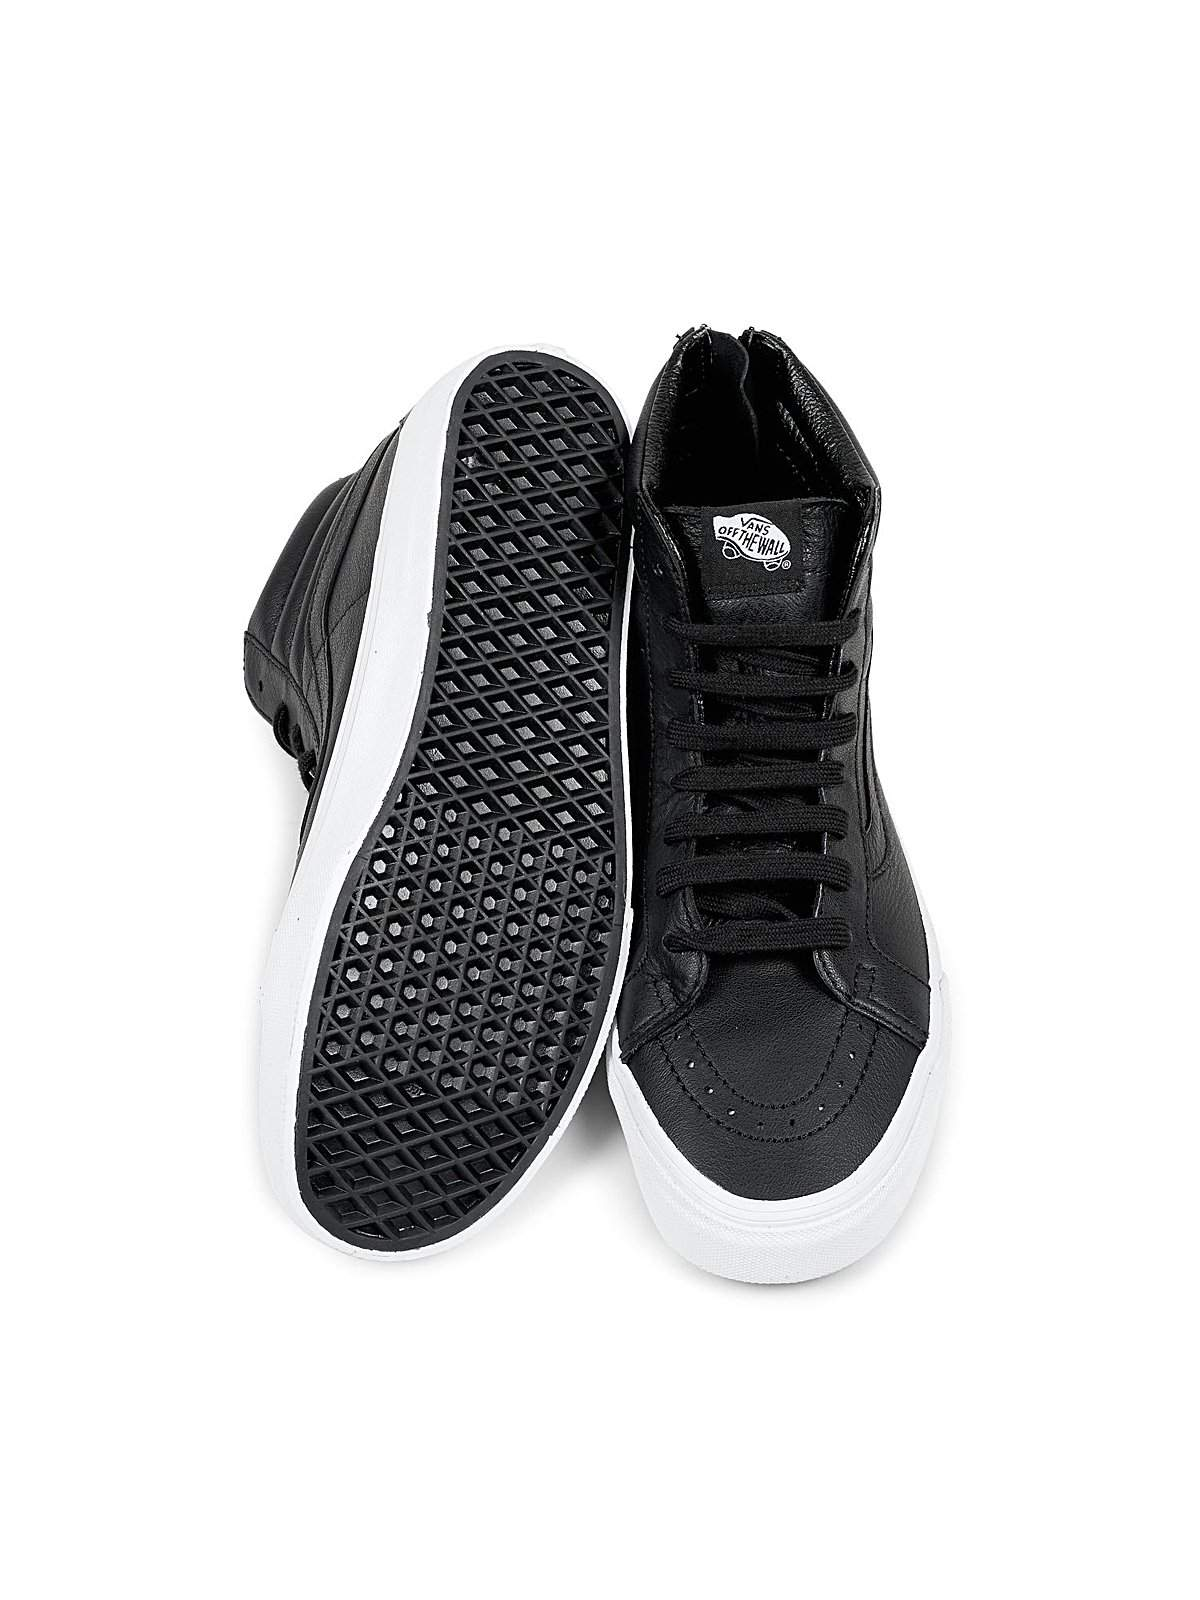 874ef1e1963f Vans SK8 HI Reissue Zip Premium Leather Black - MORE by Morello ...